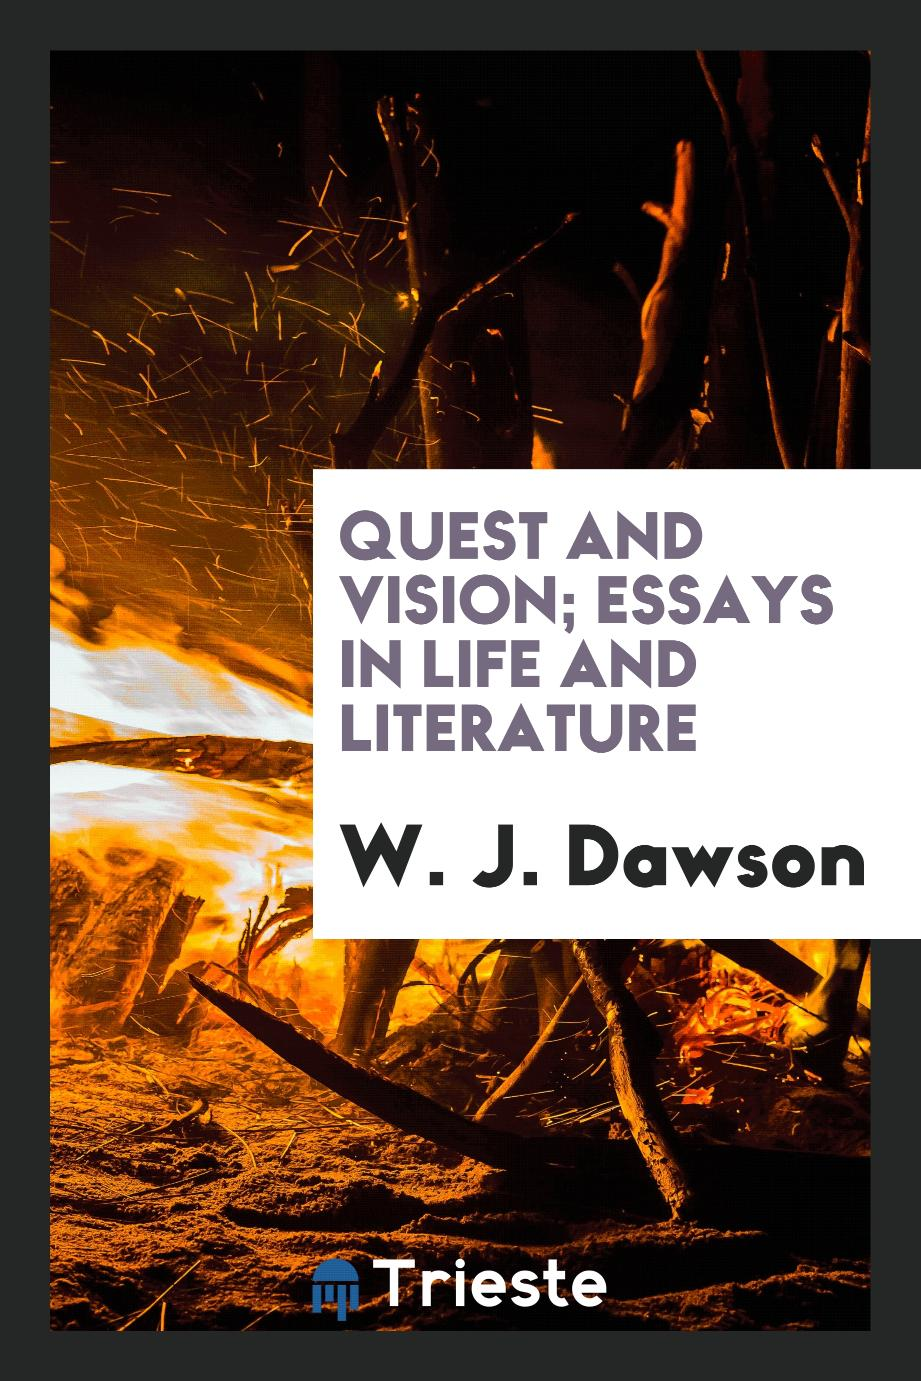 Quest and vision; essays in life and literature